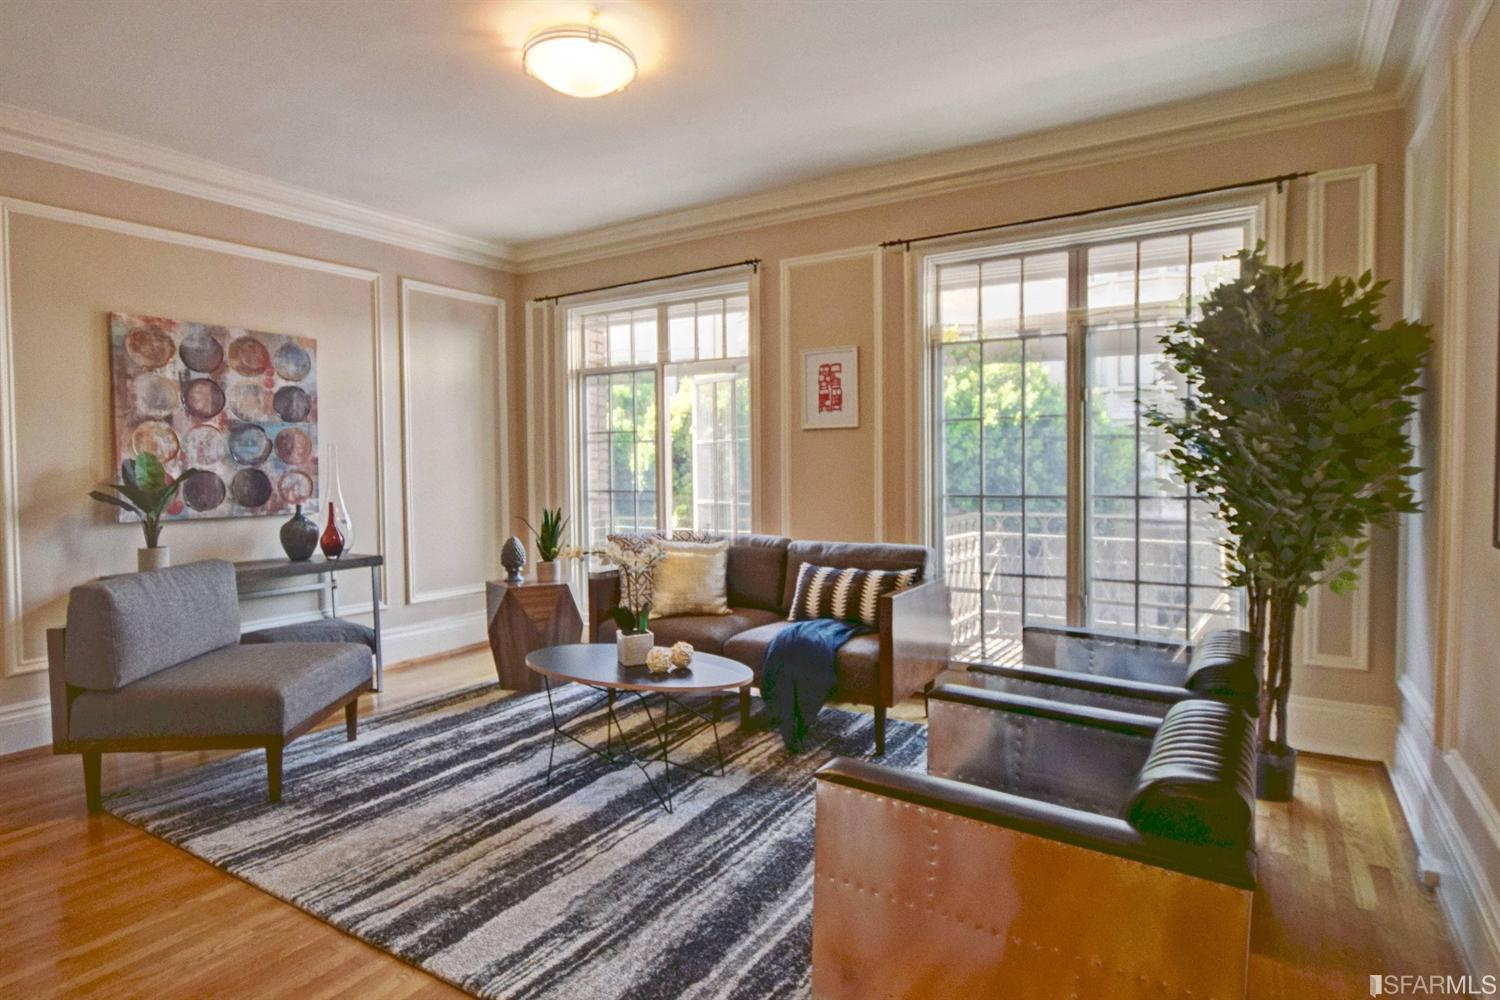 735 GearyUnit 202 - DowntownSold for $659,000